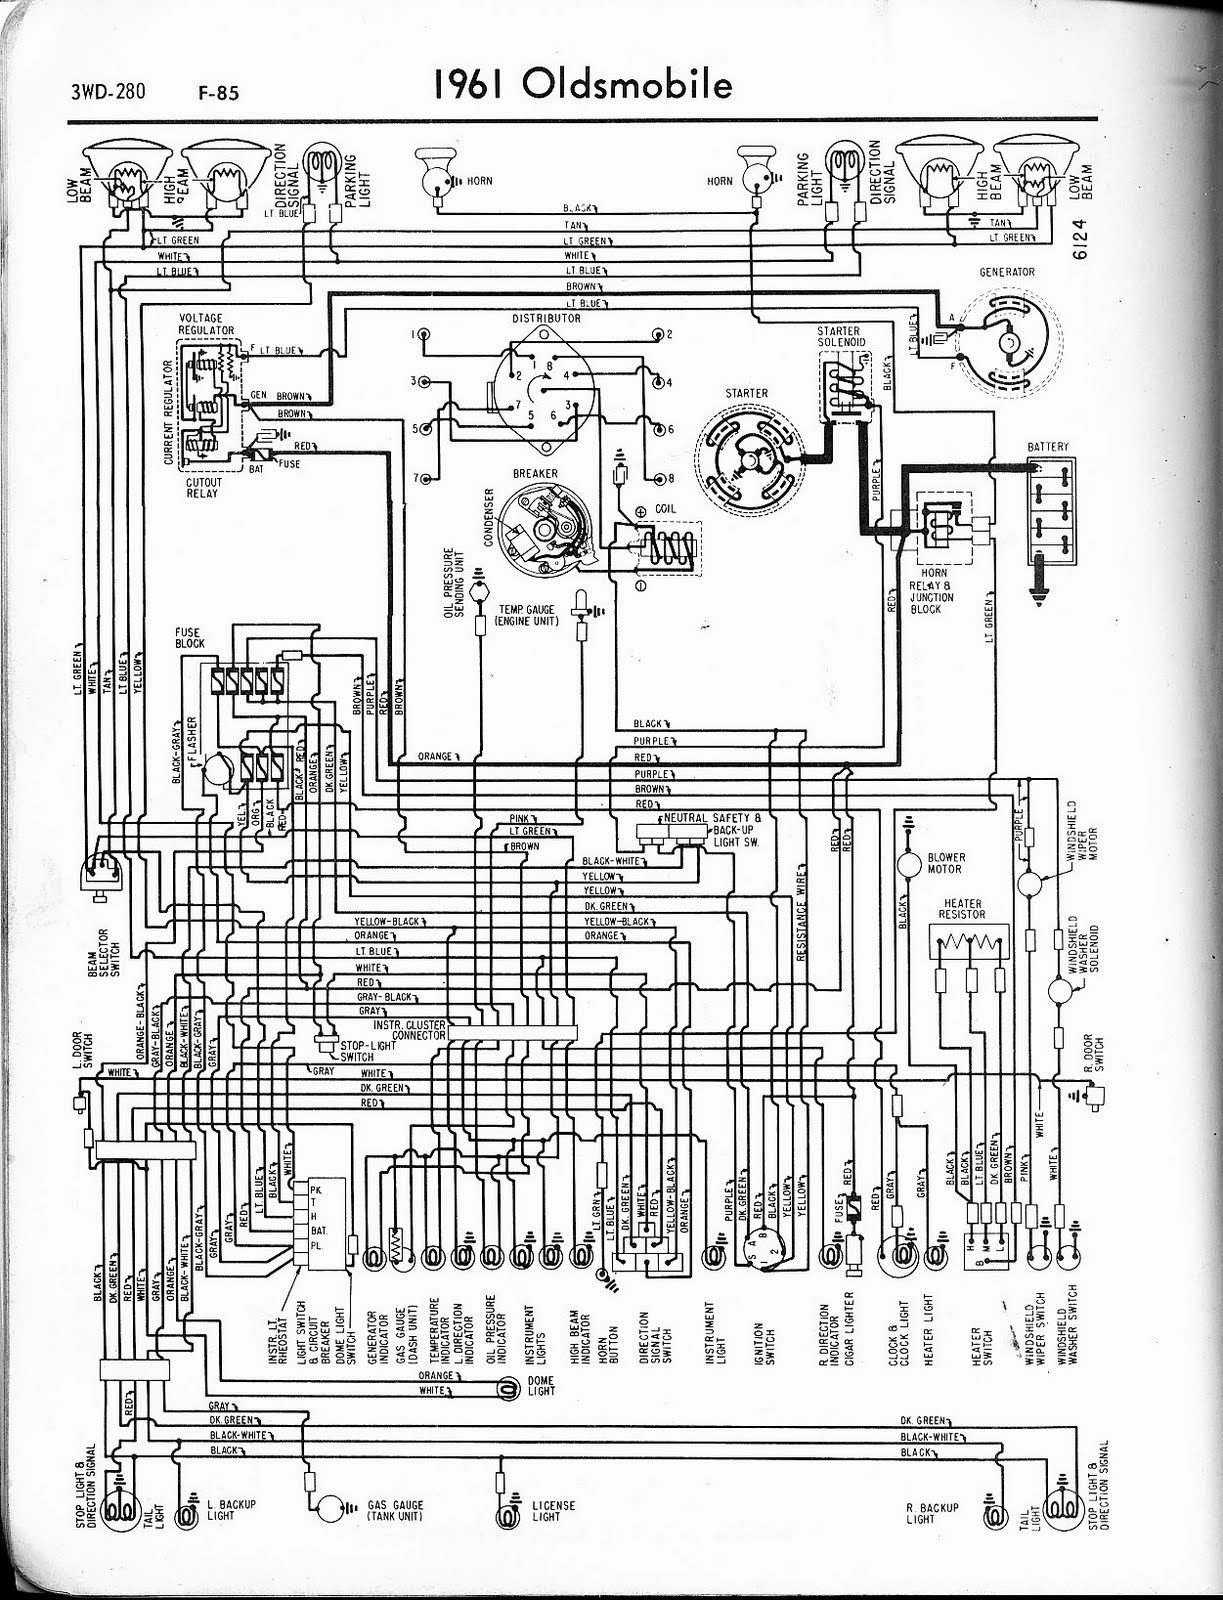 1961 Gmc Wiring Diagram Control For Chevy C10 Apache Free Auto Oldsmobile F 85